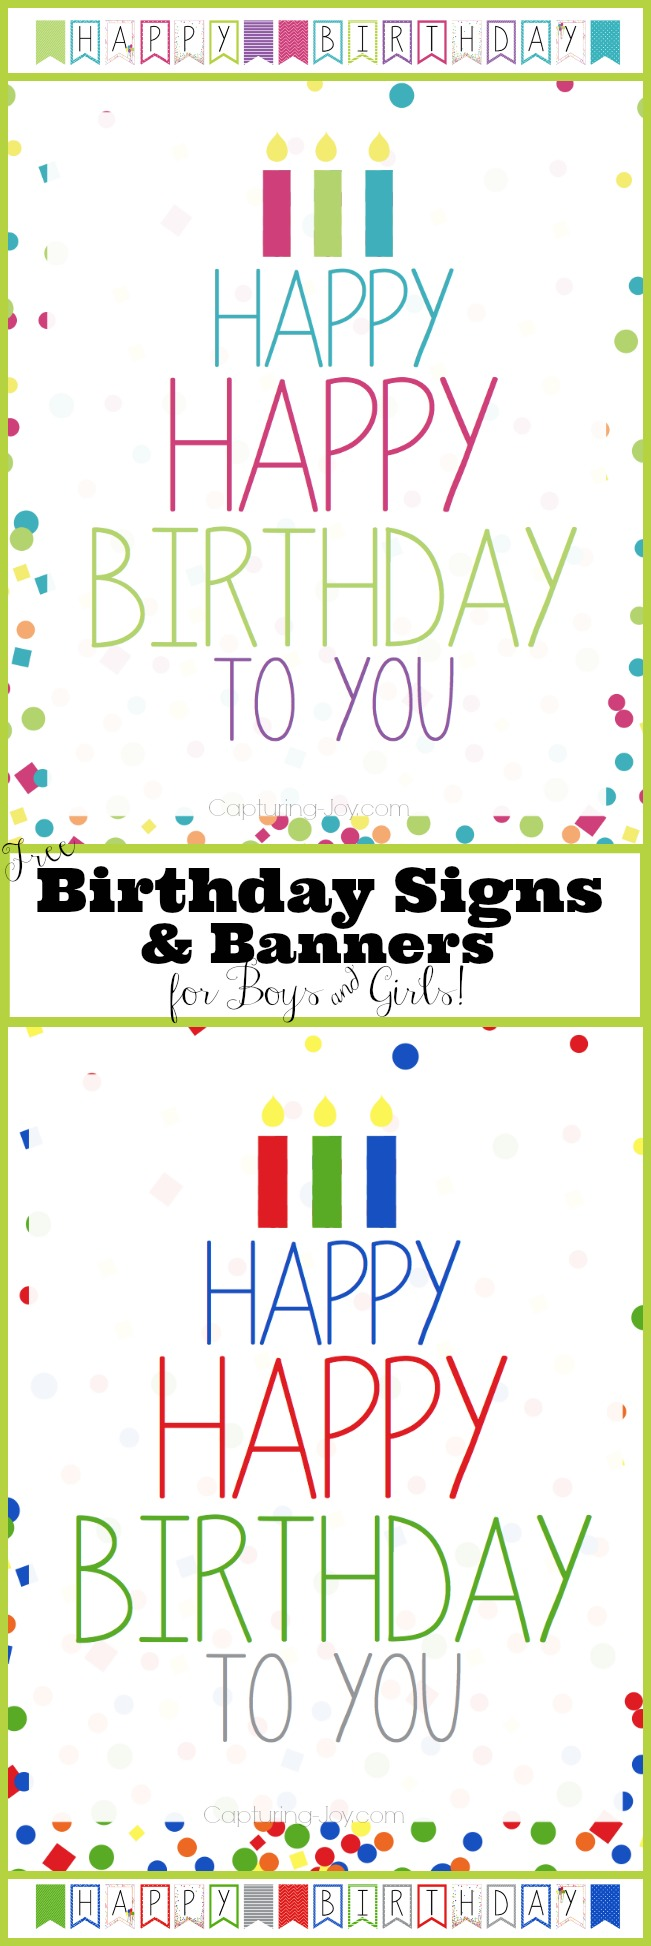 Free Birthday Signs and Banners for Boys and Girls